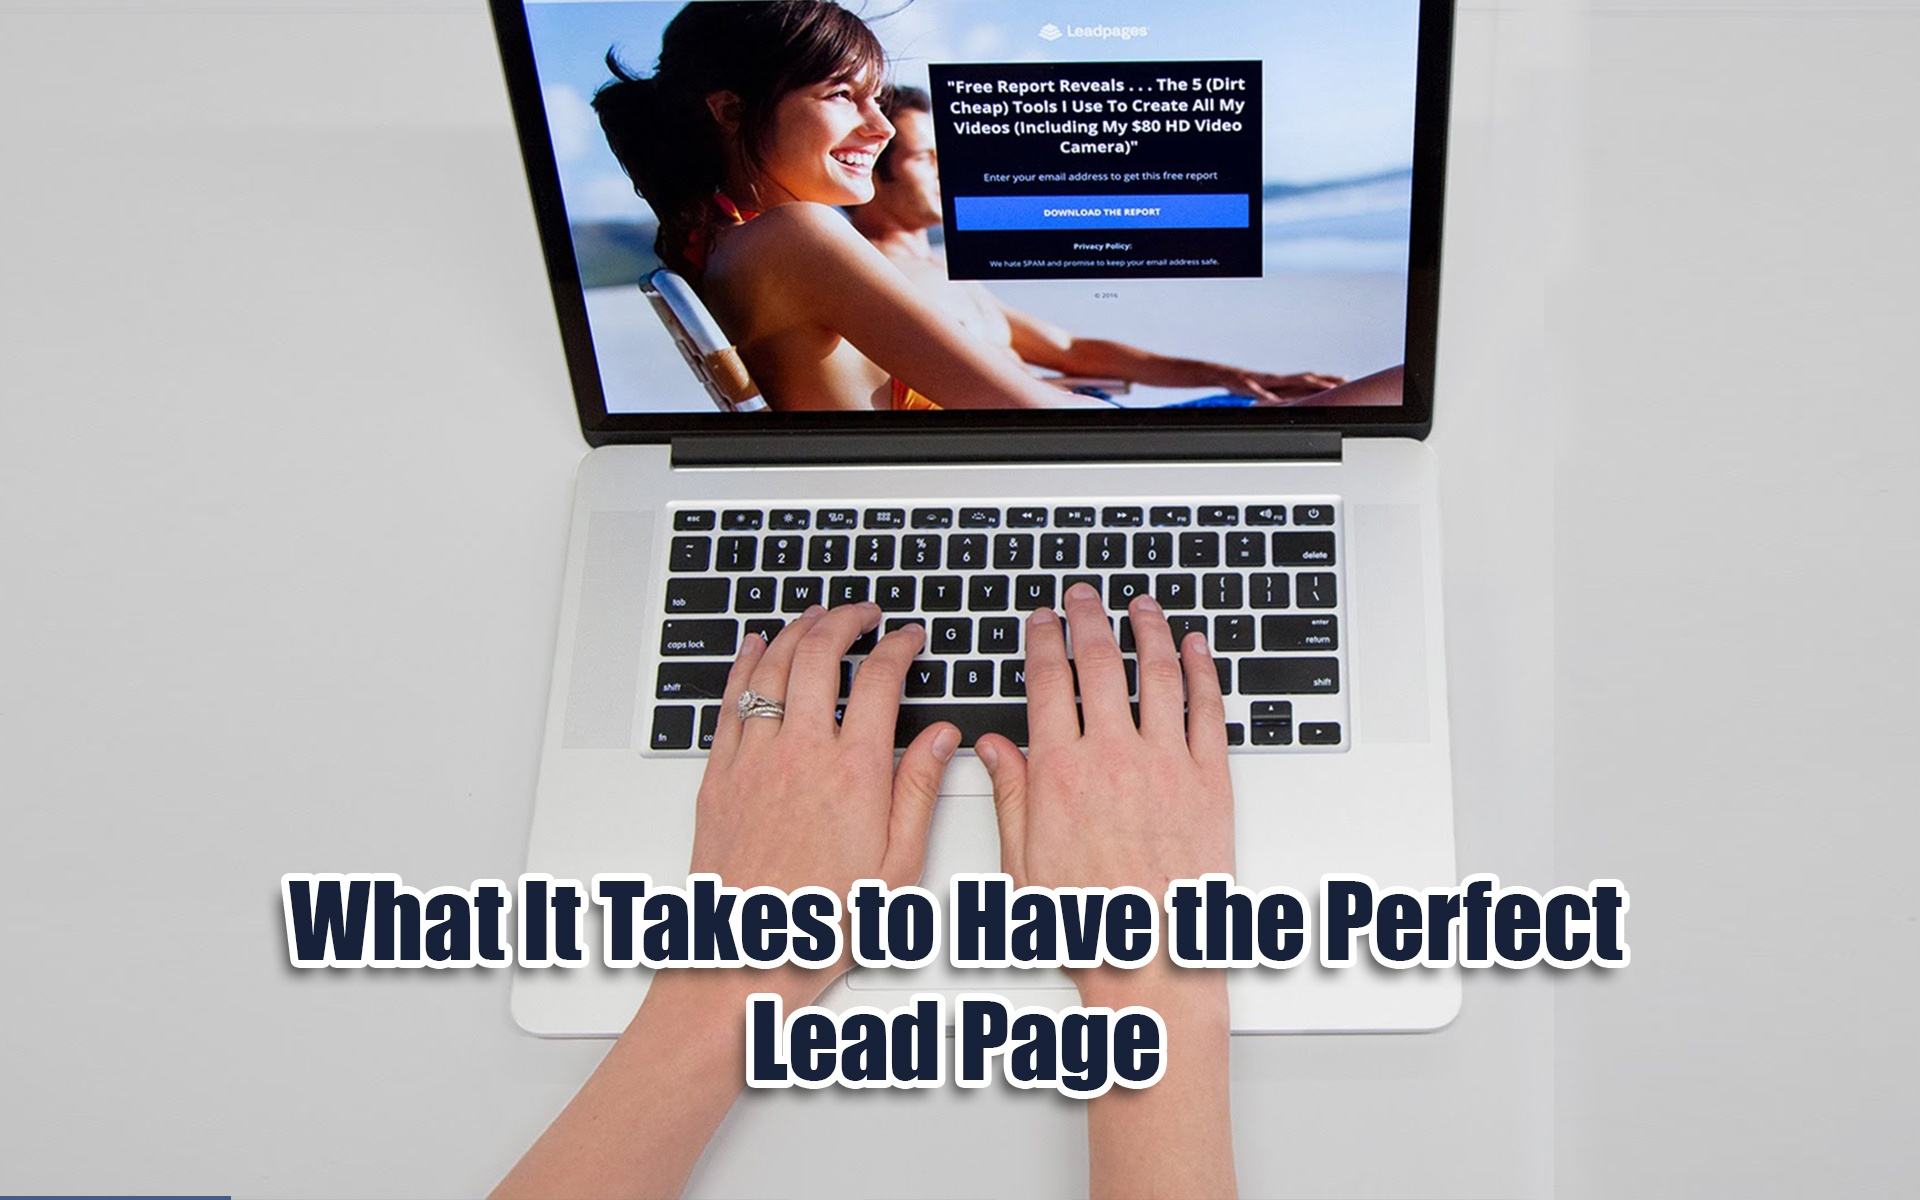 What It Takes to Have the Perfect Lead Page